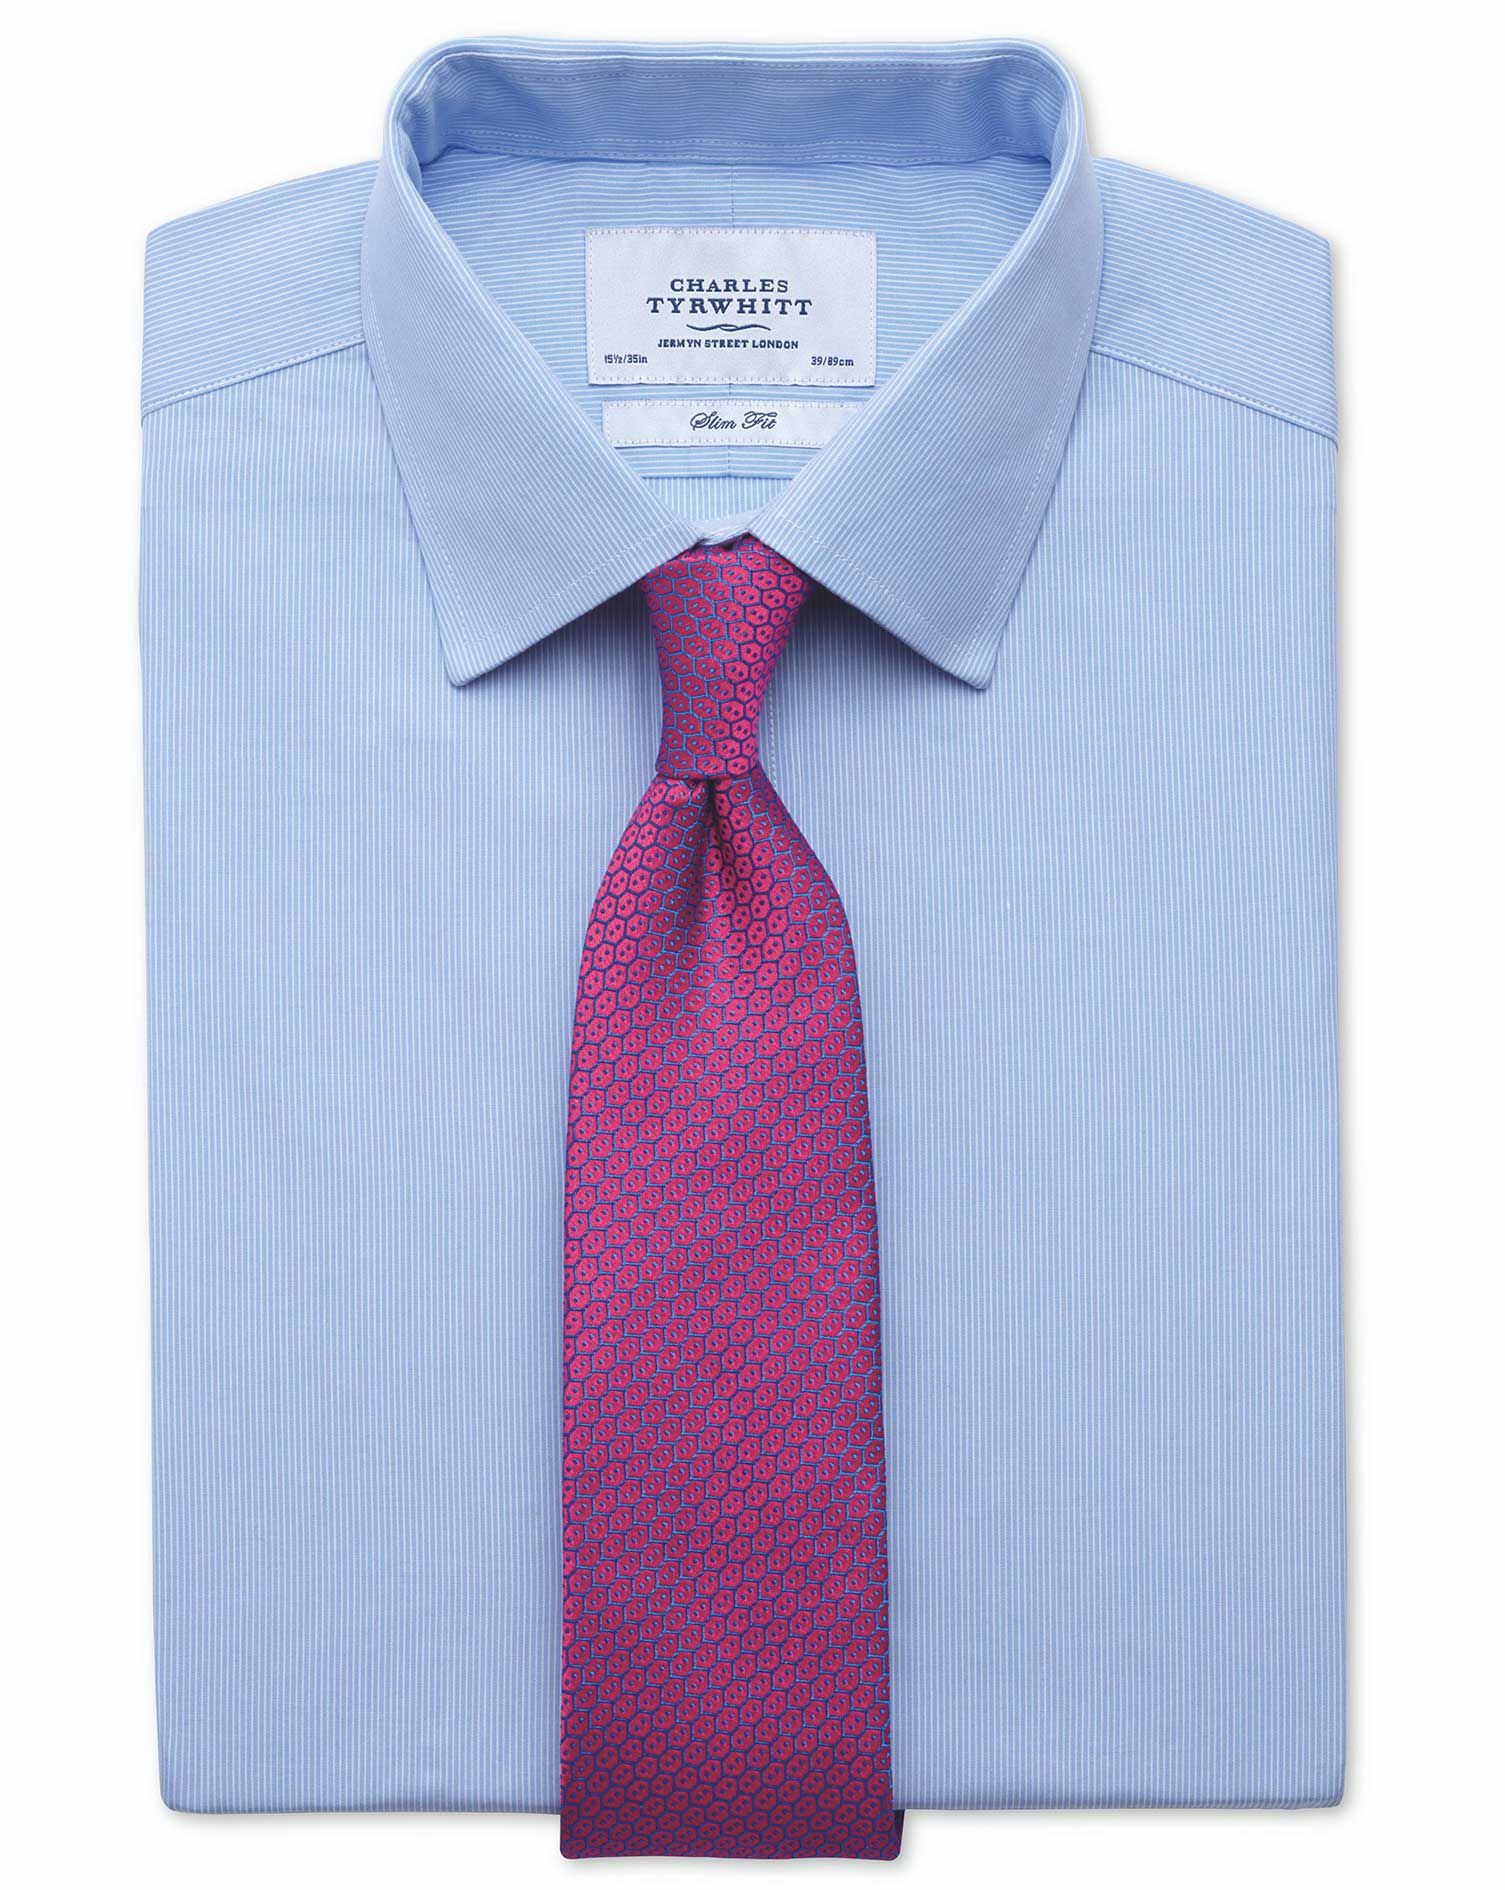 Slim Fit Fine Stripe Sky Blue Cotton Formal Shirt Double Cuff Size 15.5/35 by Charles Tyrwhitt